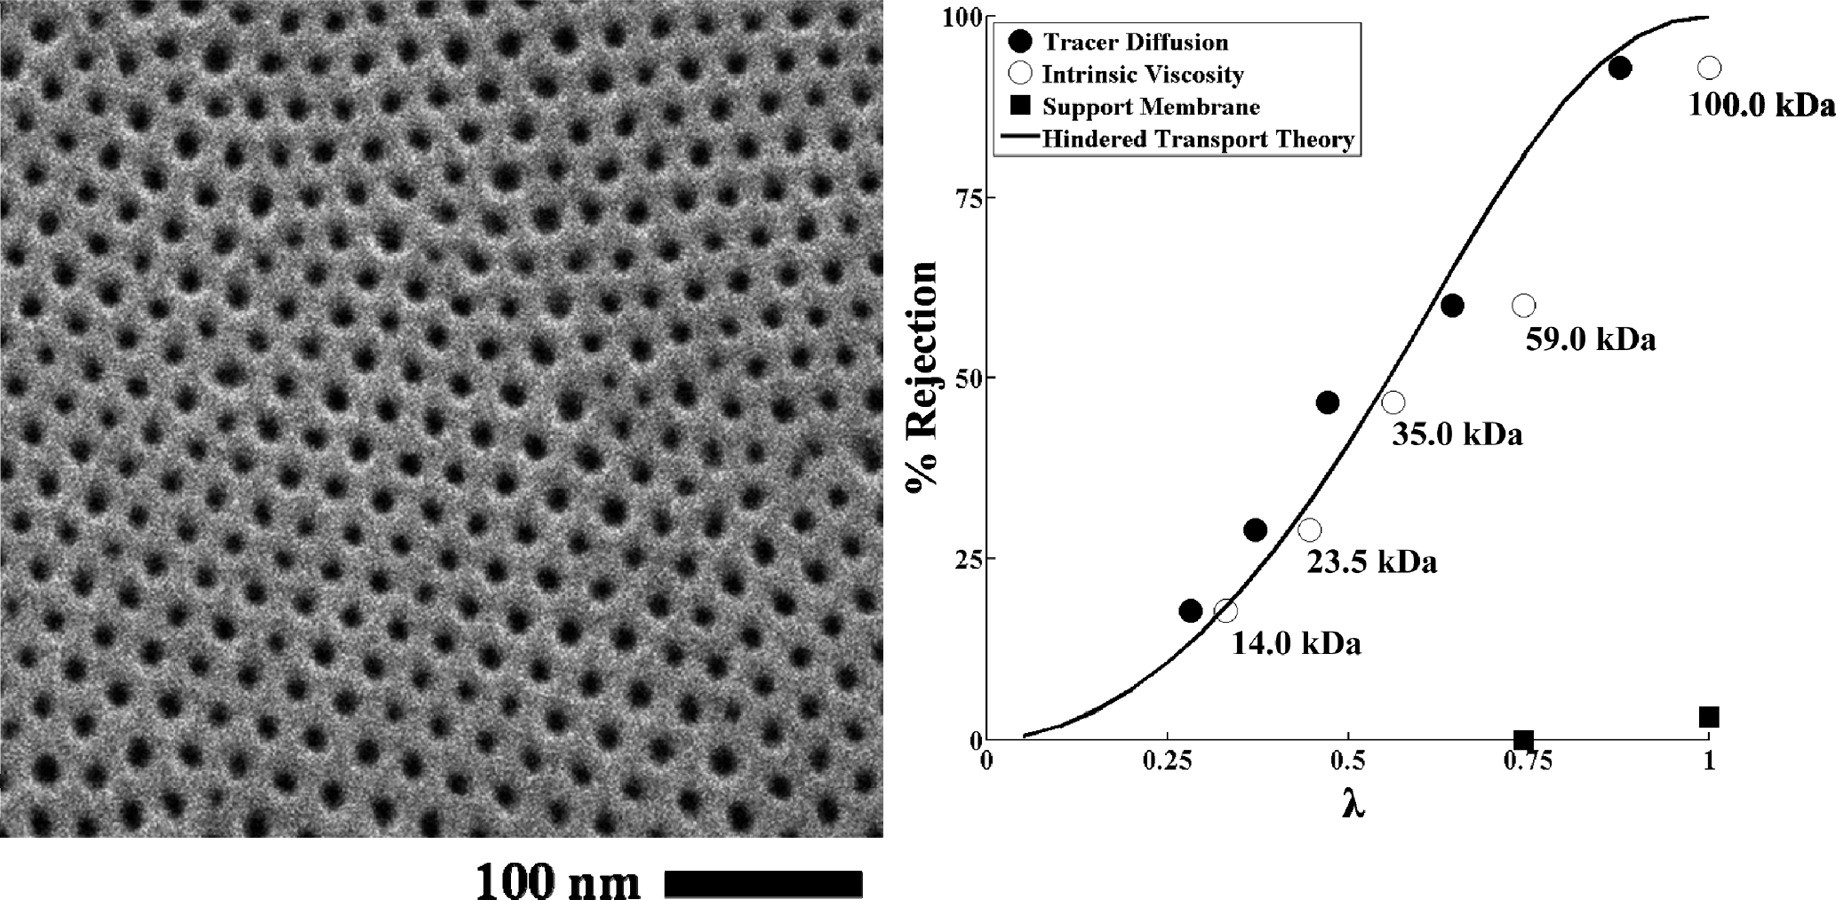 Self-Assembled Block Copolymer Thin Films as Water Filtration Membranes